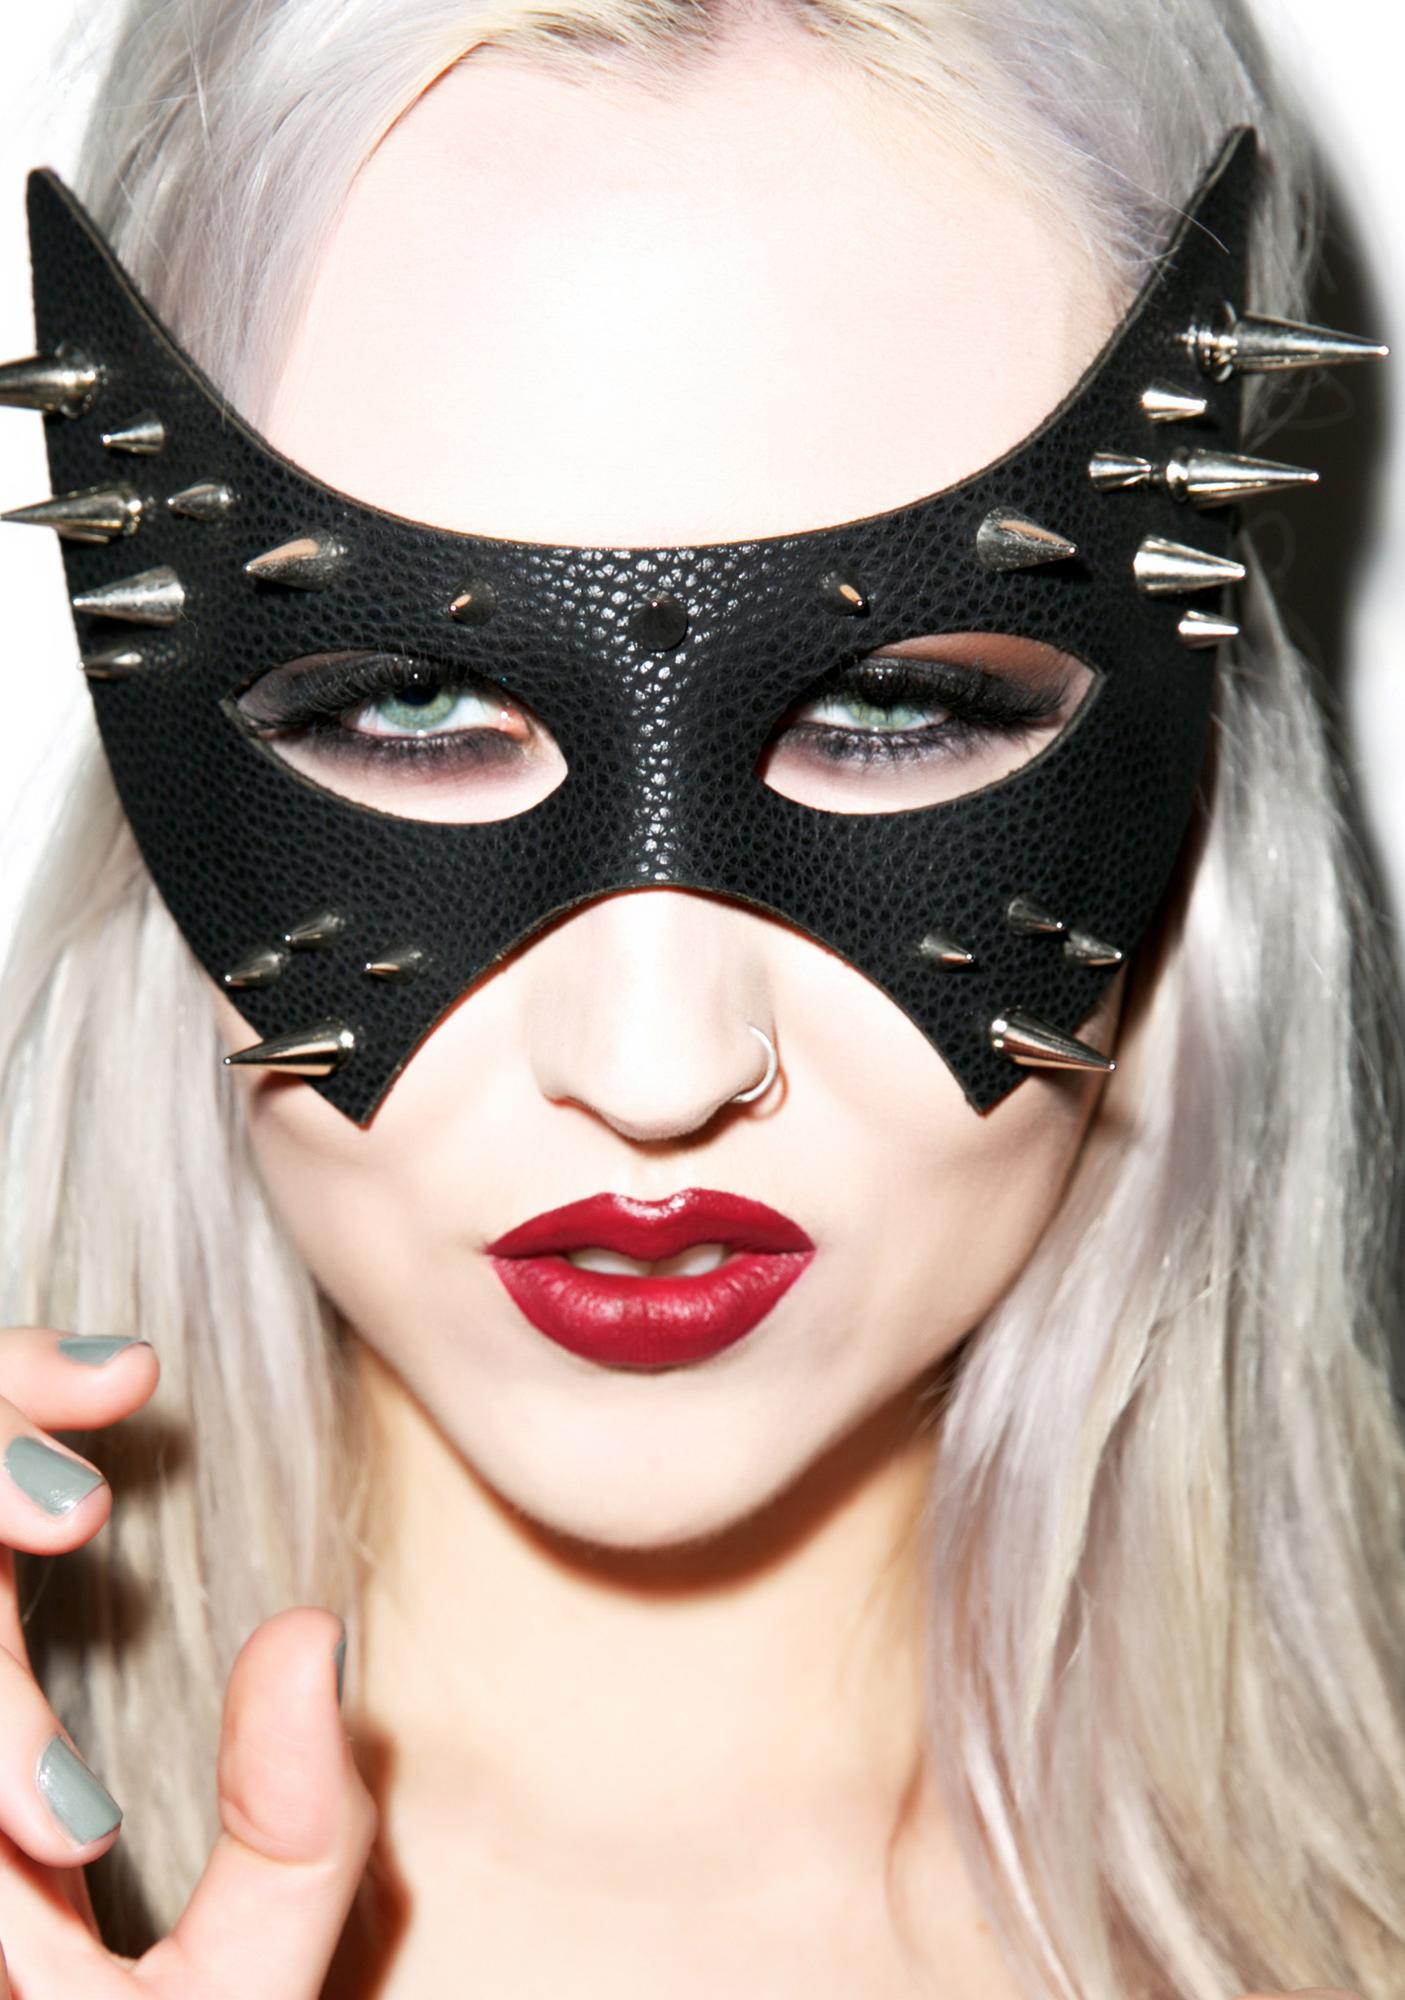 The Huntress Spiked Mask